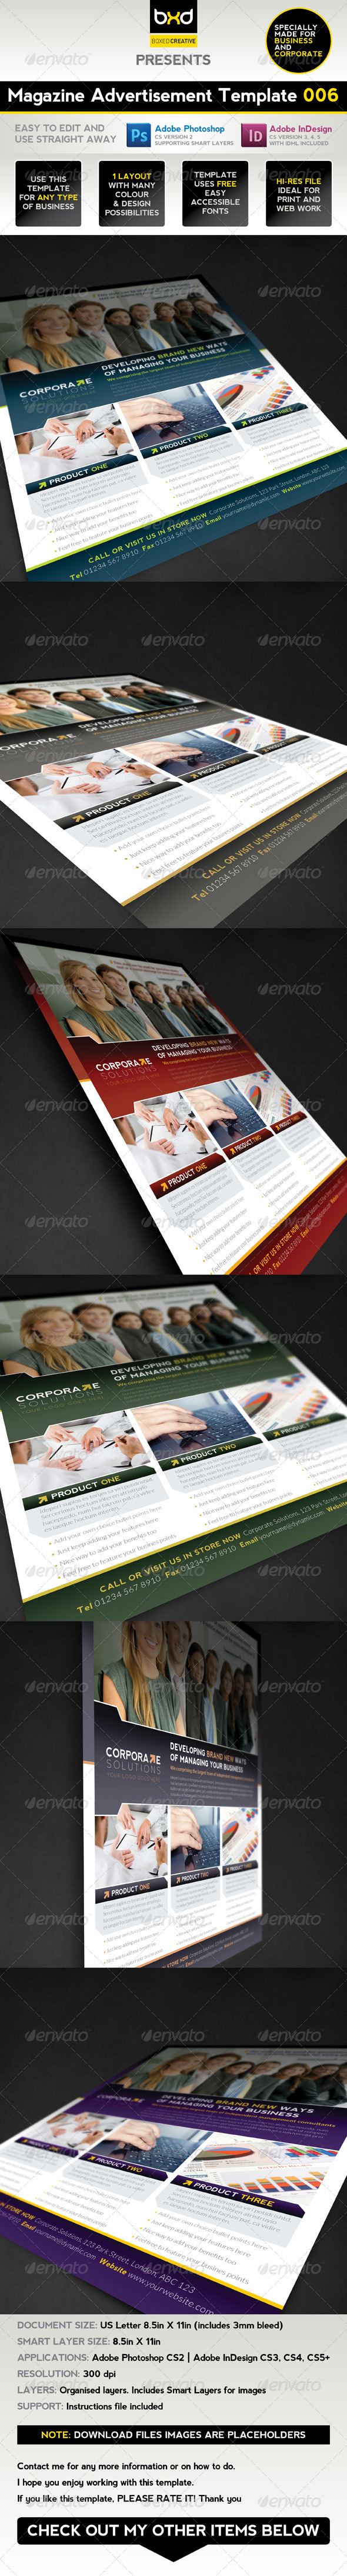 Magazine Advert Template 006 - Corporate Flyers